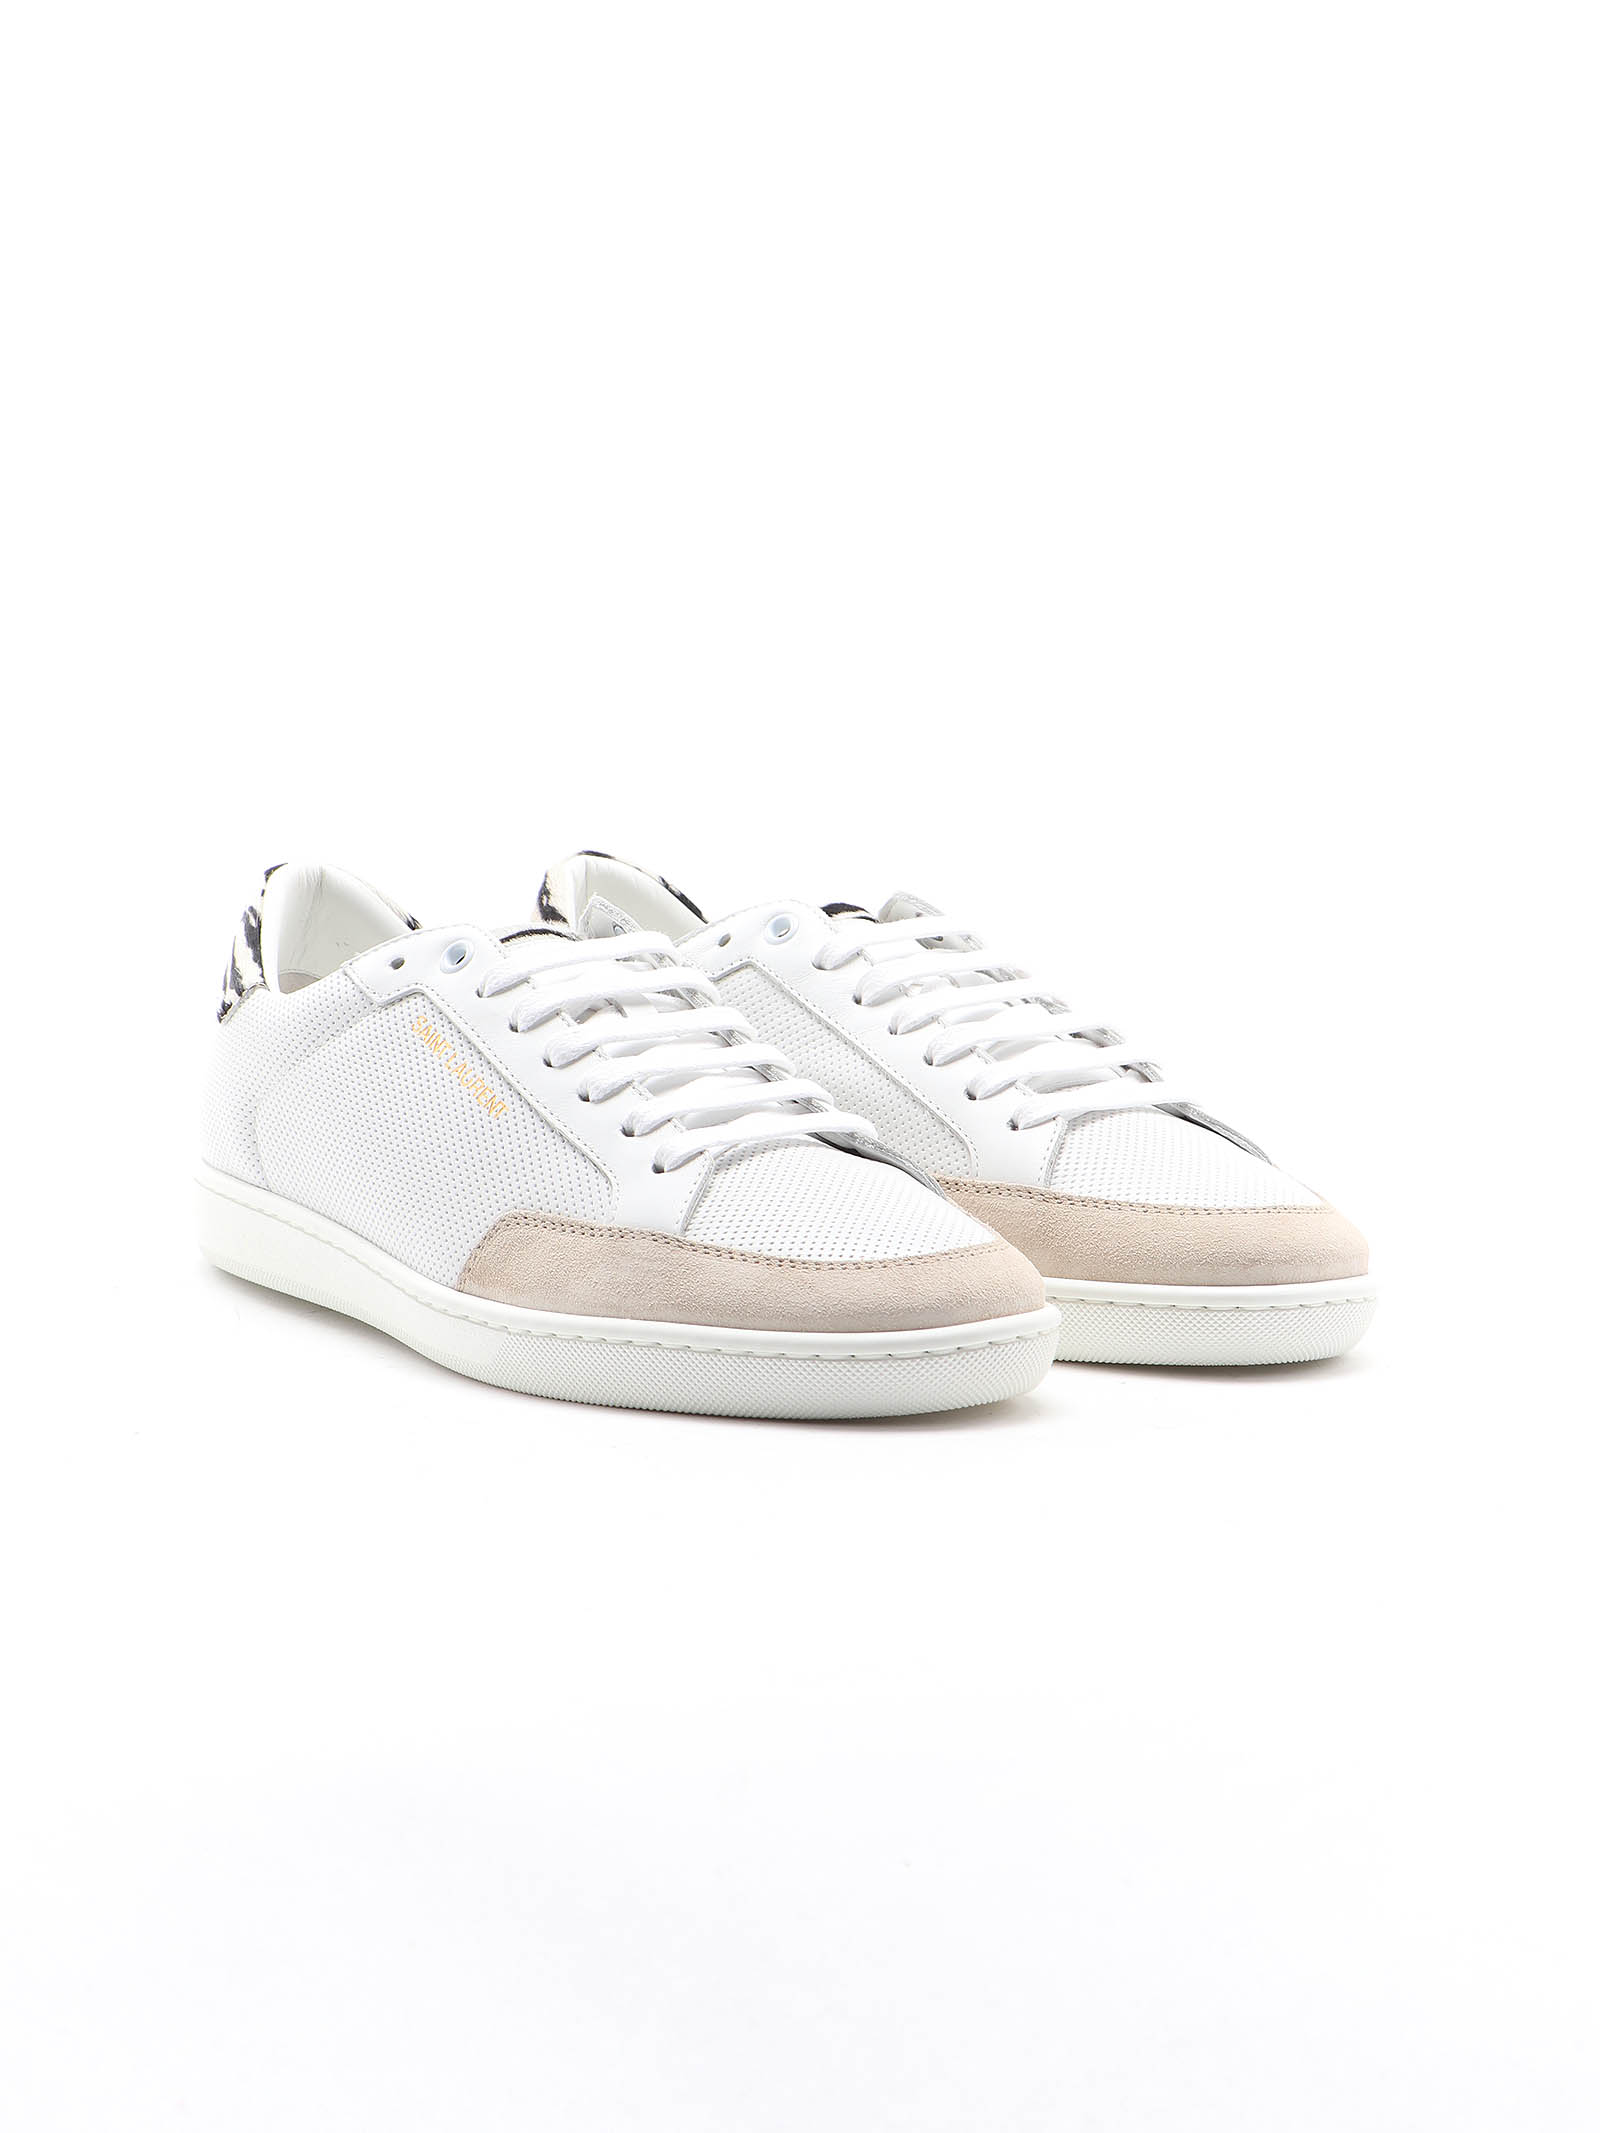 Picture of Saint Laurent | Sl/10 Low Top Sneaker